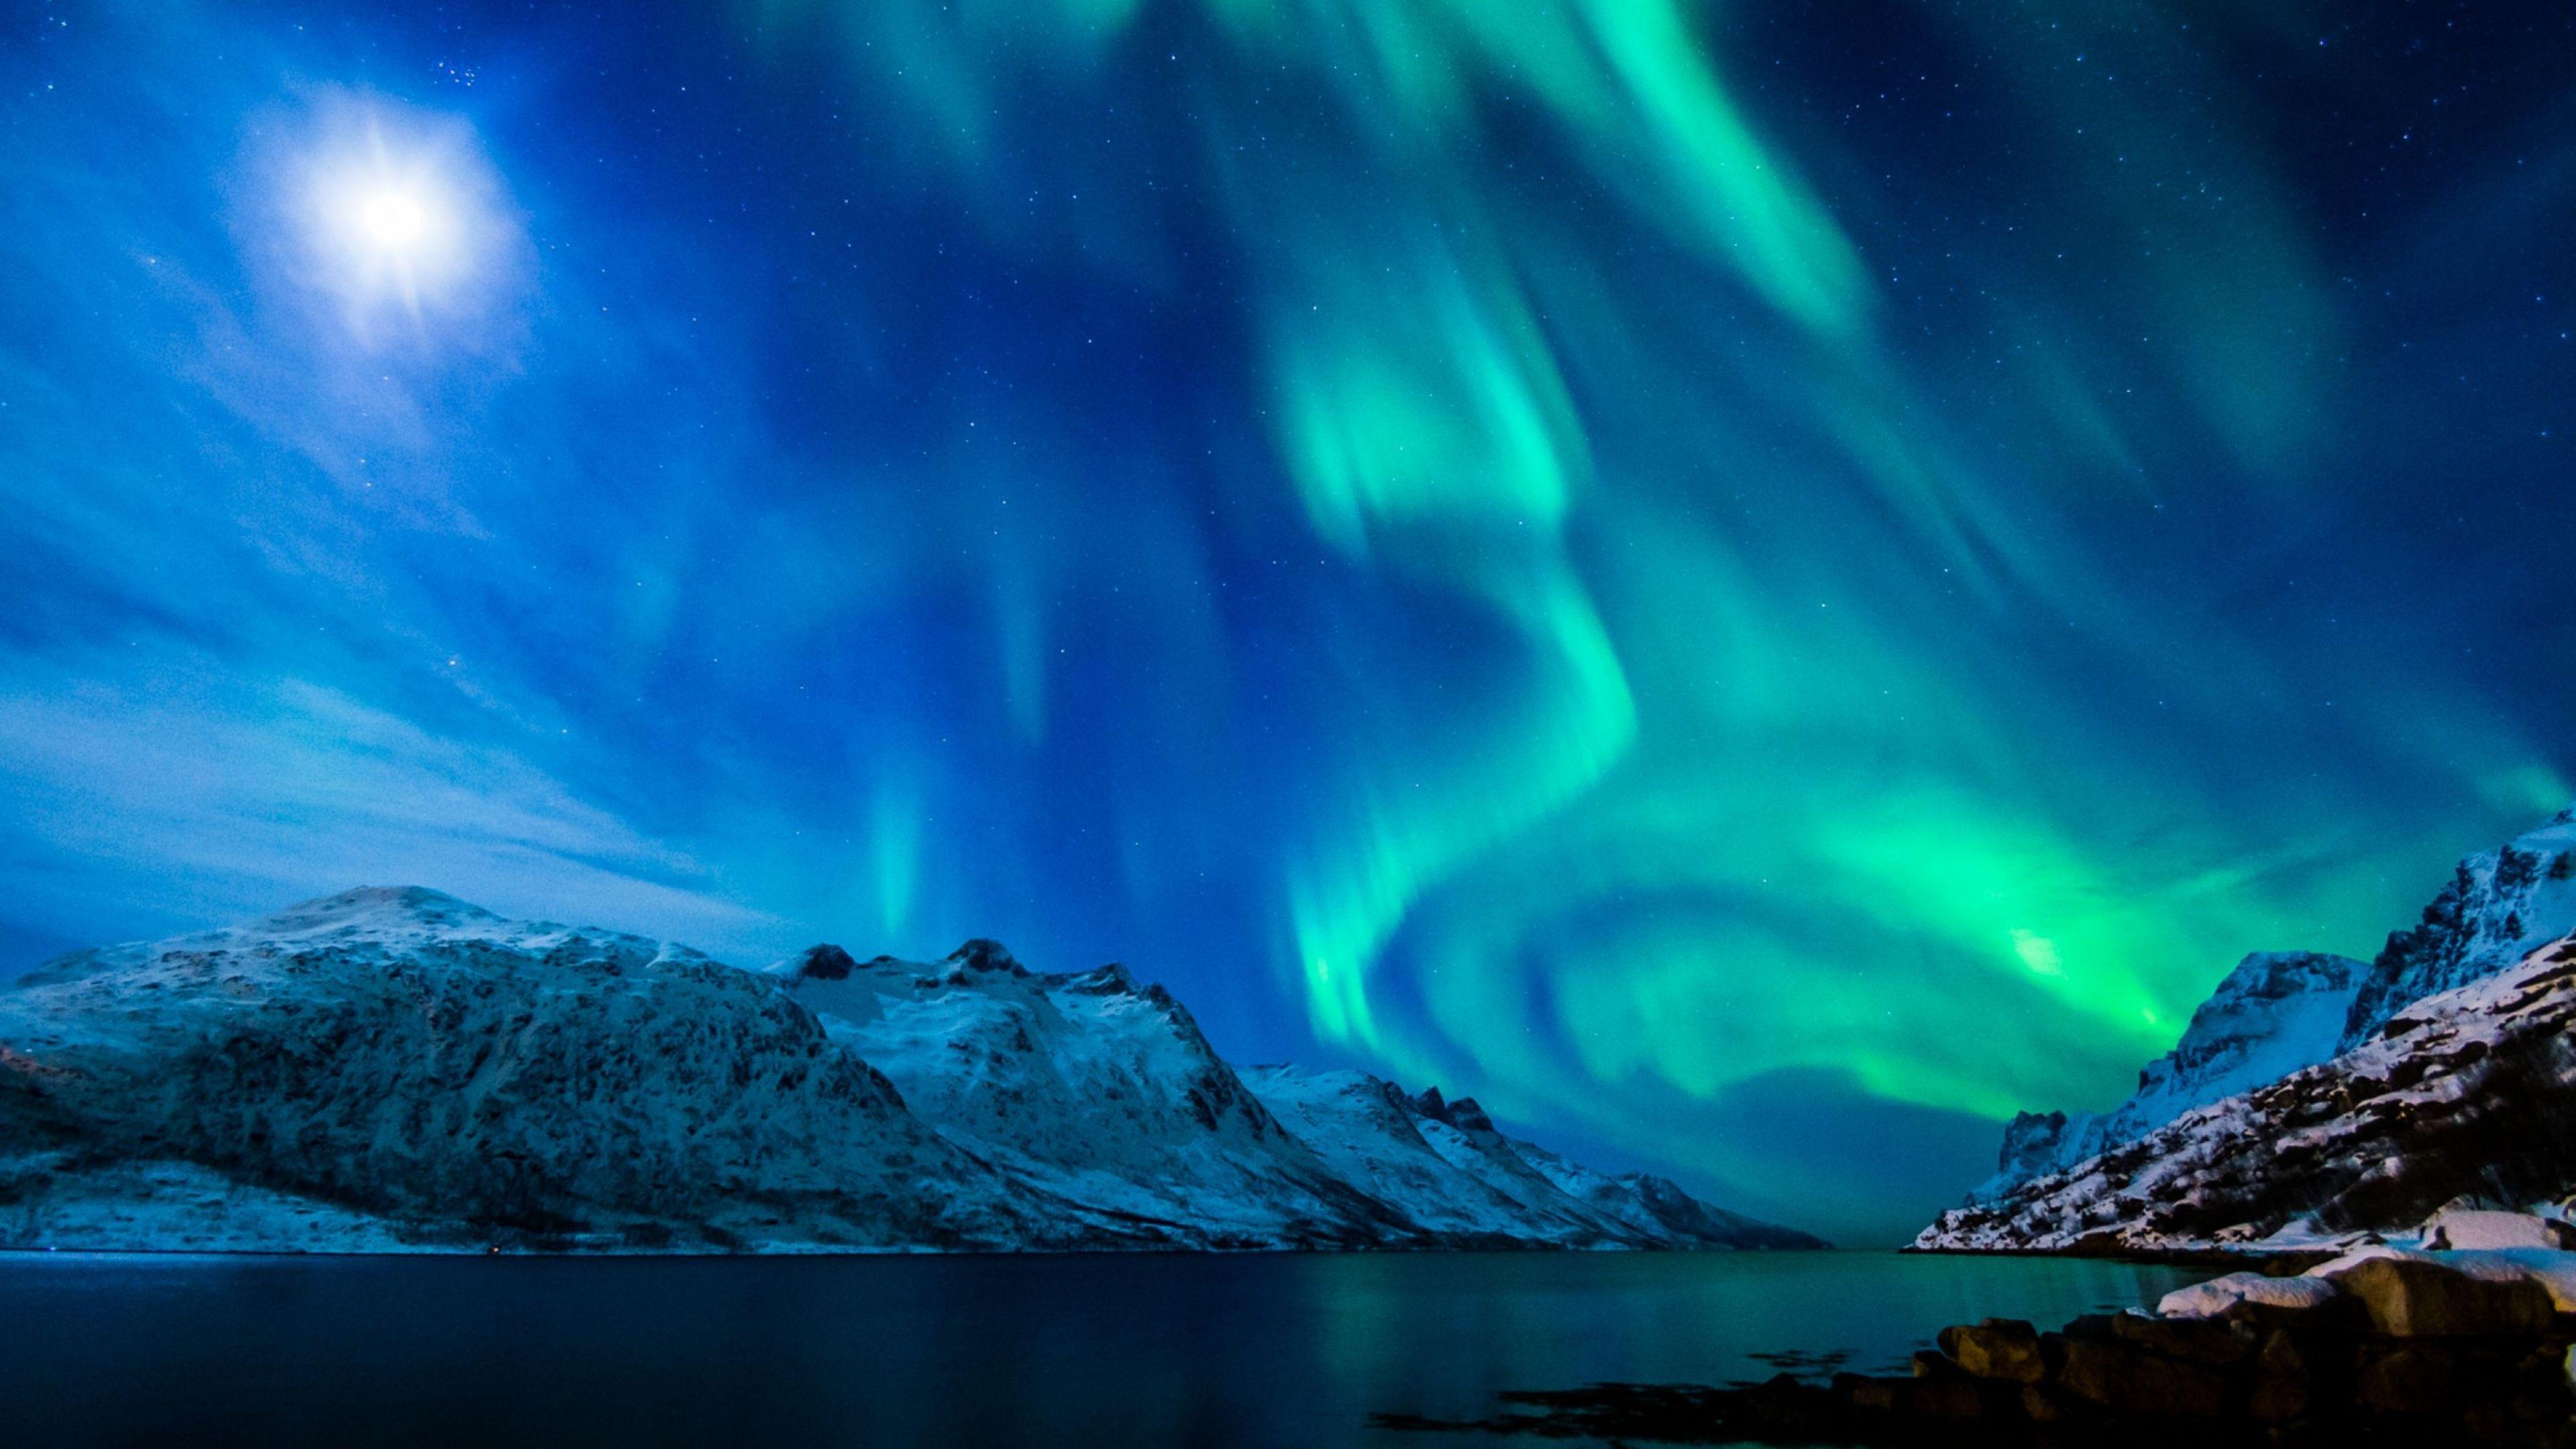 Northern Lights Hd Wallpapers Wallpaper Cave